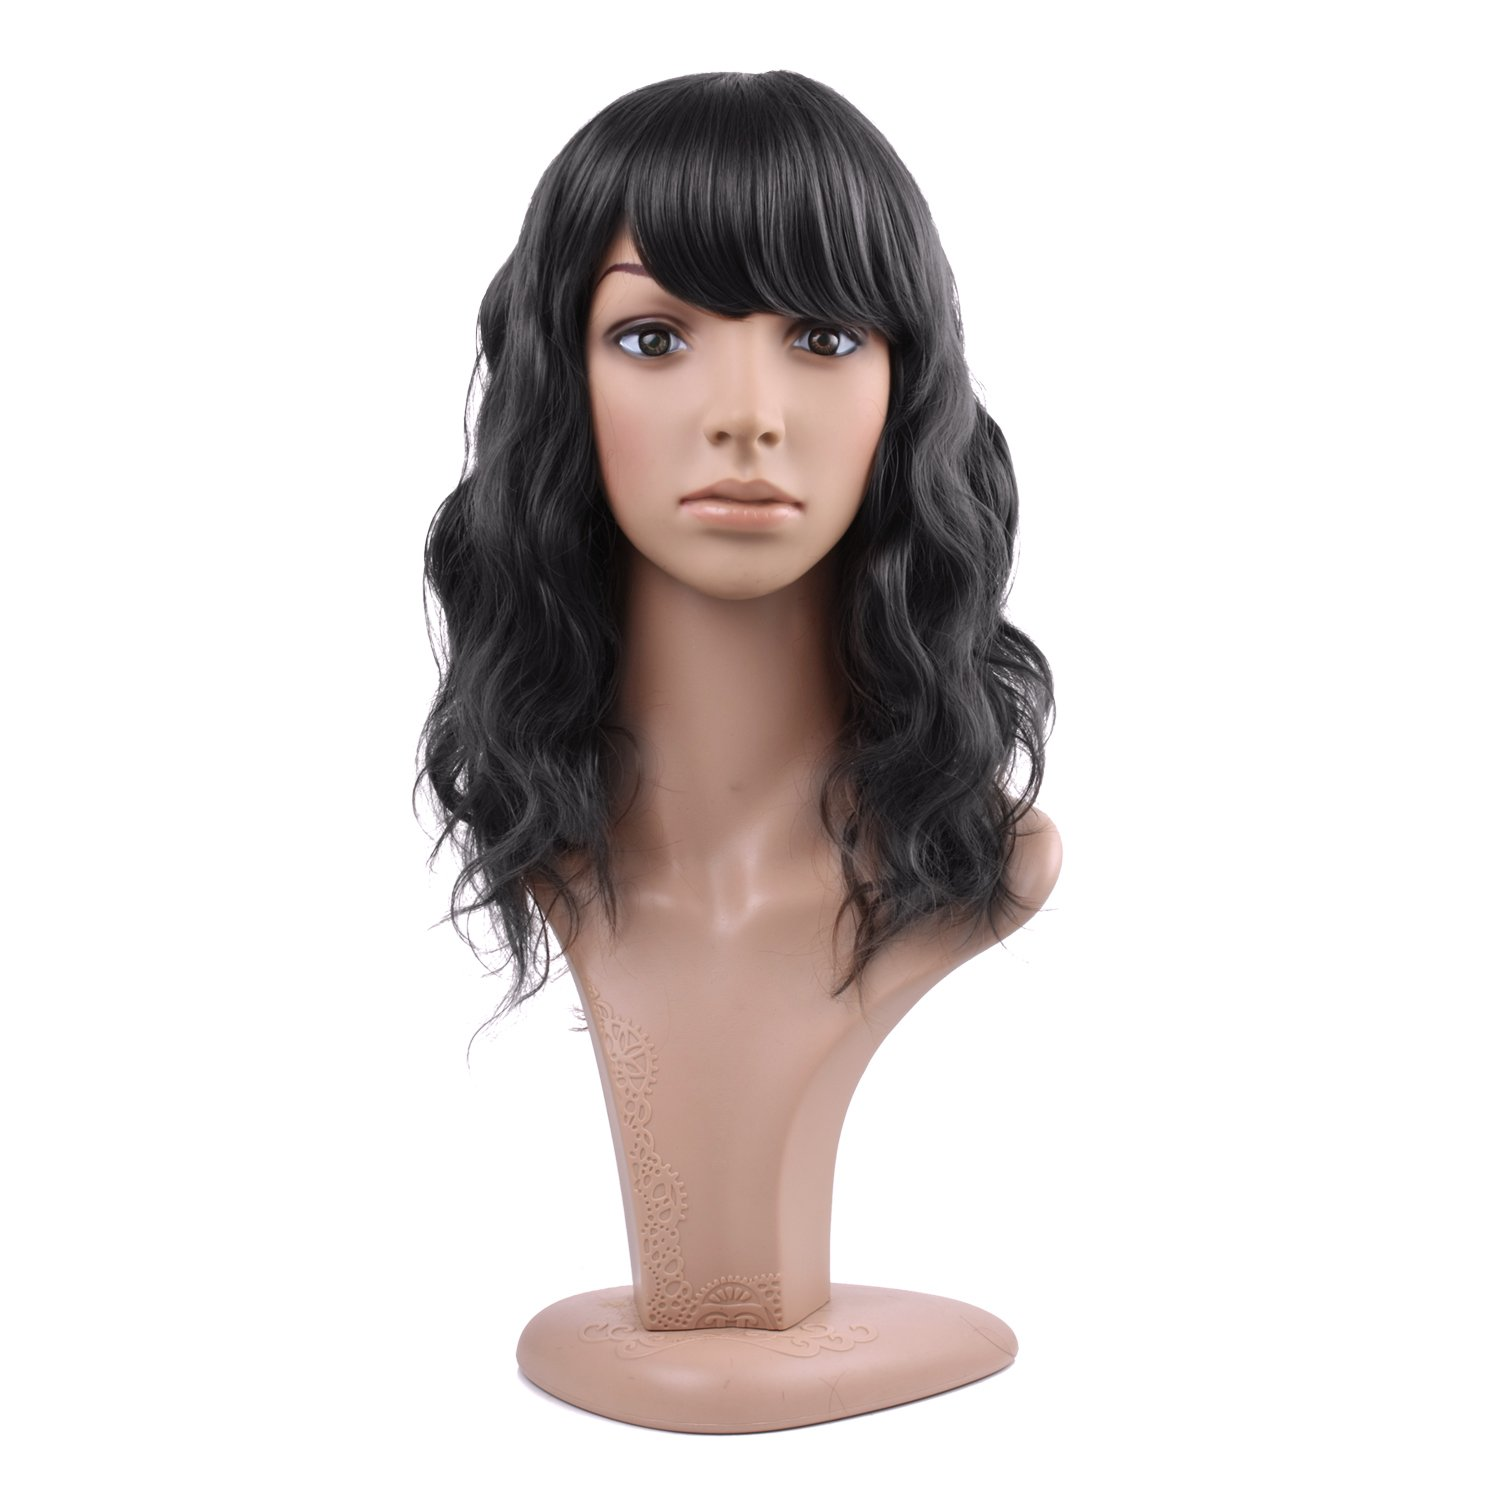 MelodySusie Black Mid-length Curly Wig - Attractive Women Mid-length Layered Curly Wig with Free Wig Cap (Black)